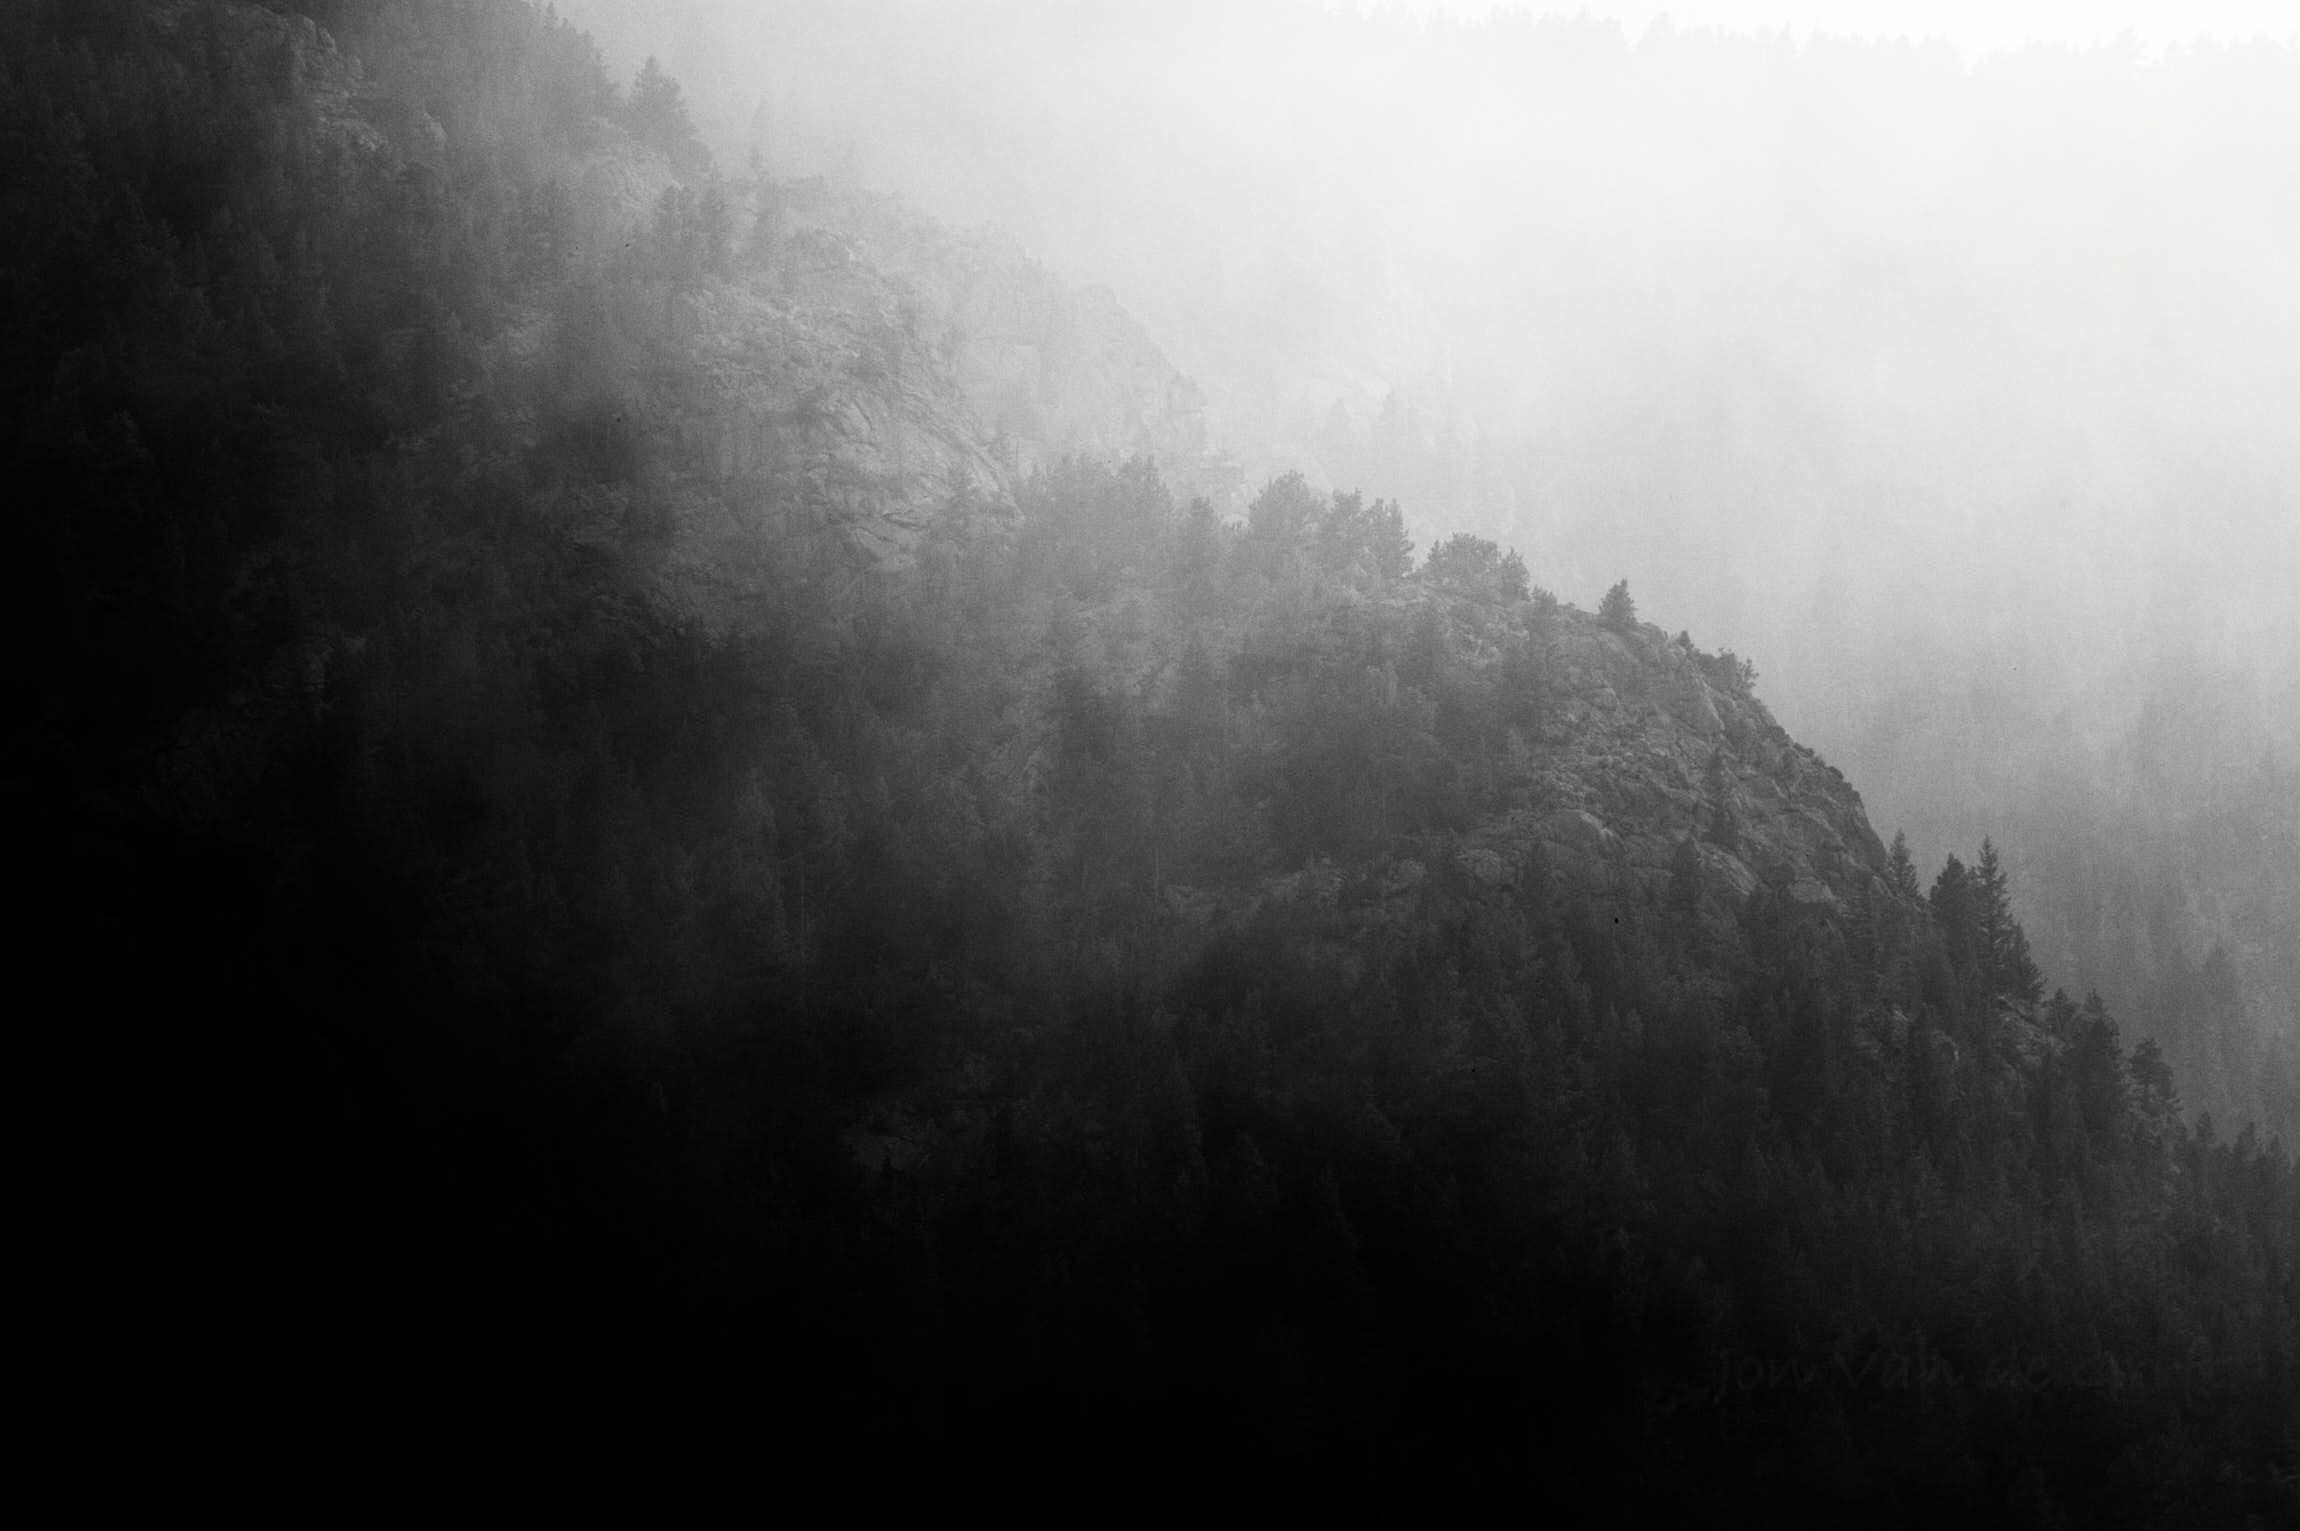 Black and white photograph of smoke from a fire on a forested mountain